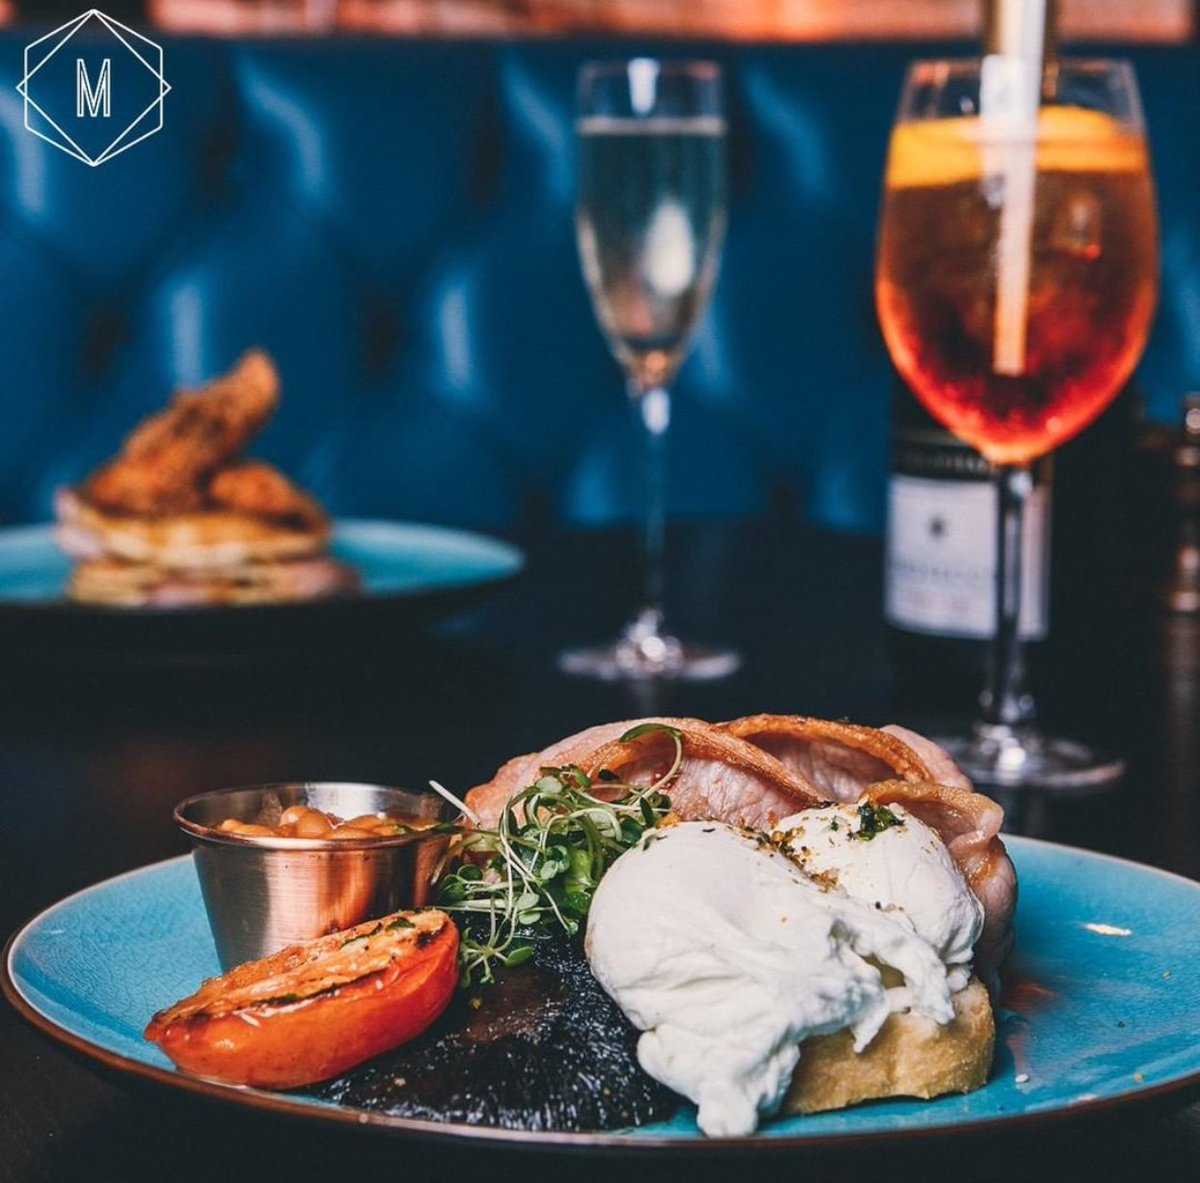 Stuck for something to do this weekend? Why not join us for our amazing Bottomless Brunch 🥂 Get 90 minutes of drinks and a brunch dish for only £26.95! Book online here: https://arcinspirations.com/manahatta-merrionst/book … #eeds #bottomlessbrunch #manahatta #drinks #weekend #aperolspritz #prosecco #deals